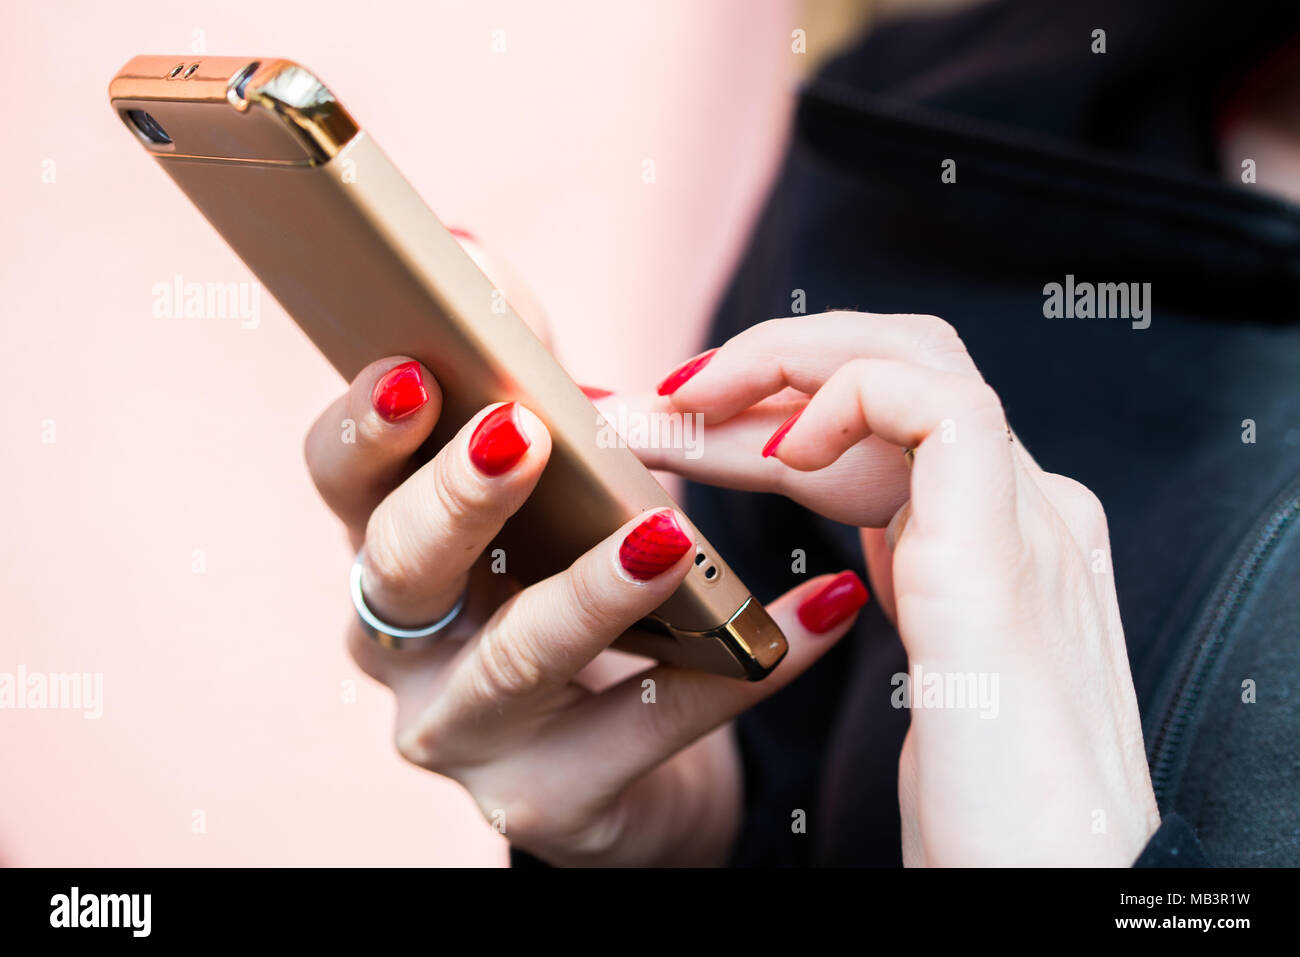 Female hands texting on smartphone, nicely manicured fingernails - Stock Image